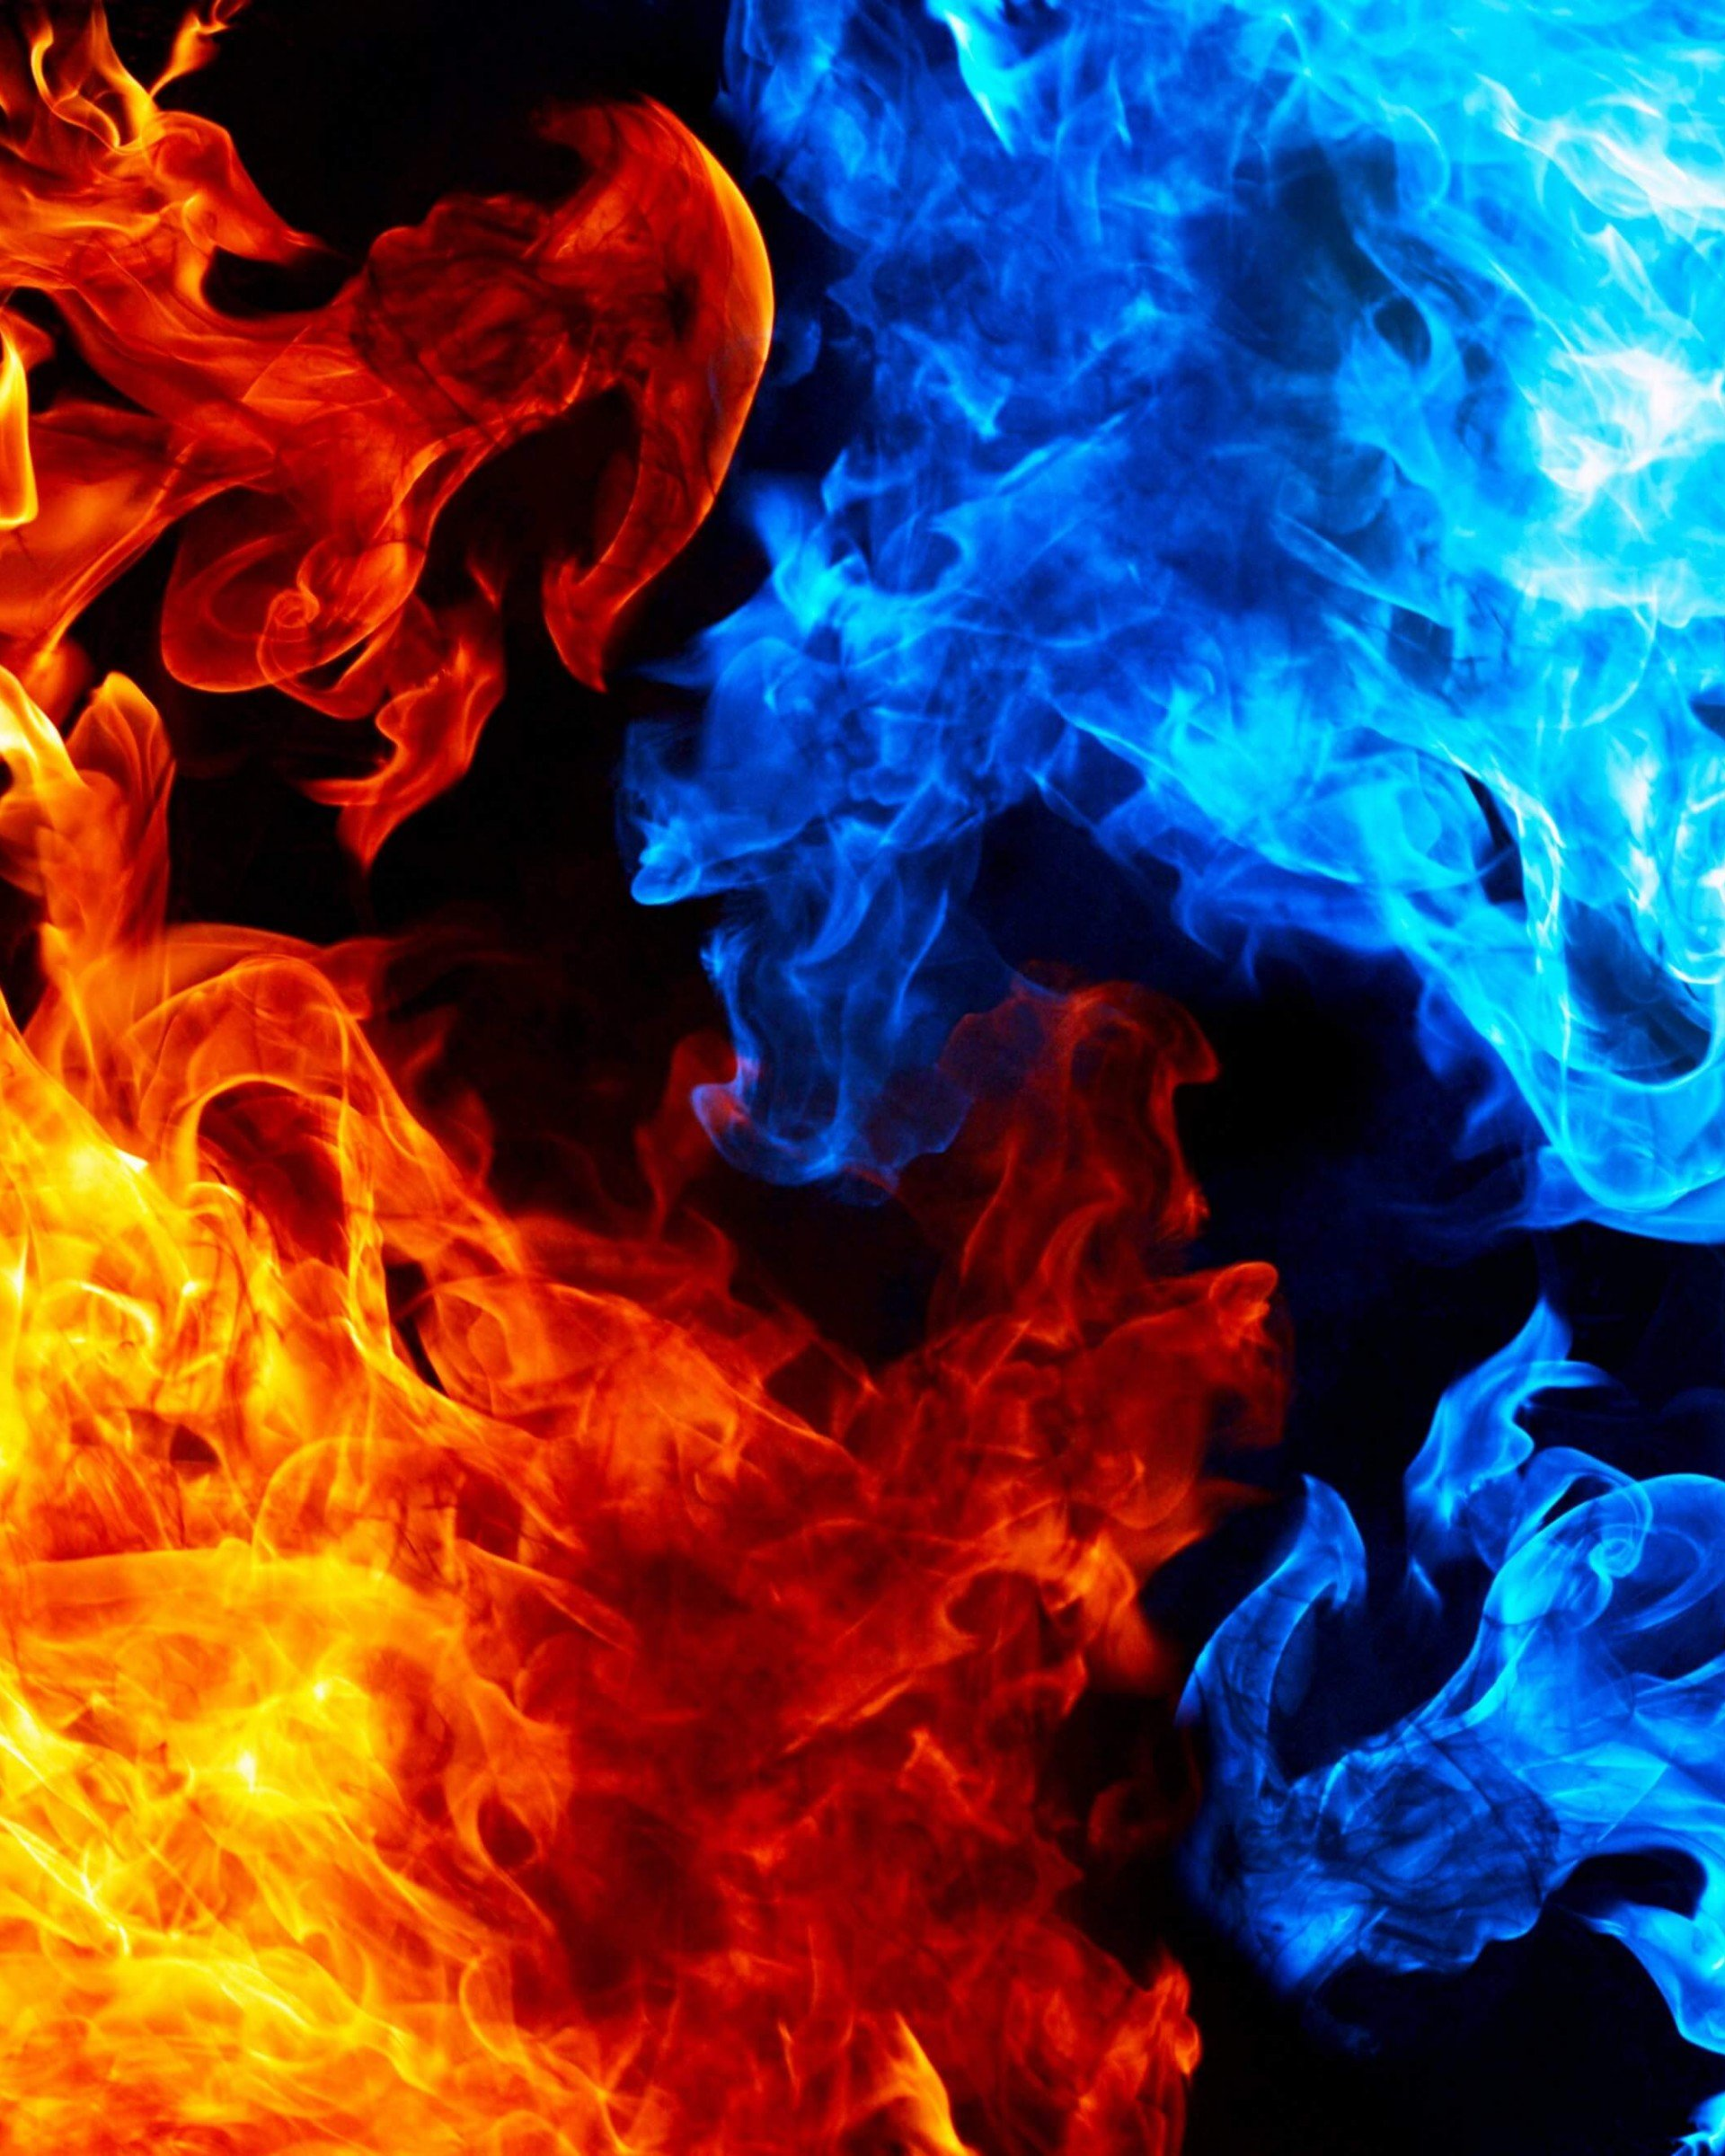 Blue And Red Fire Wallpaper